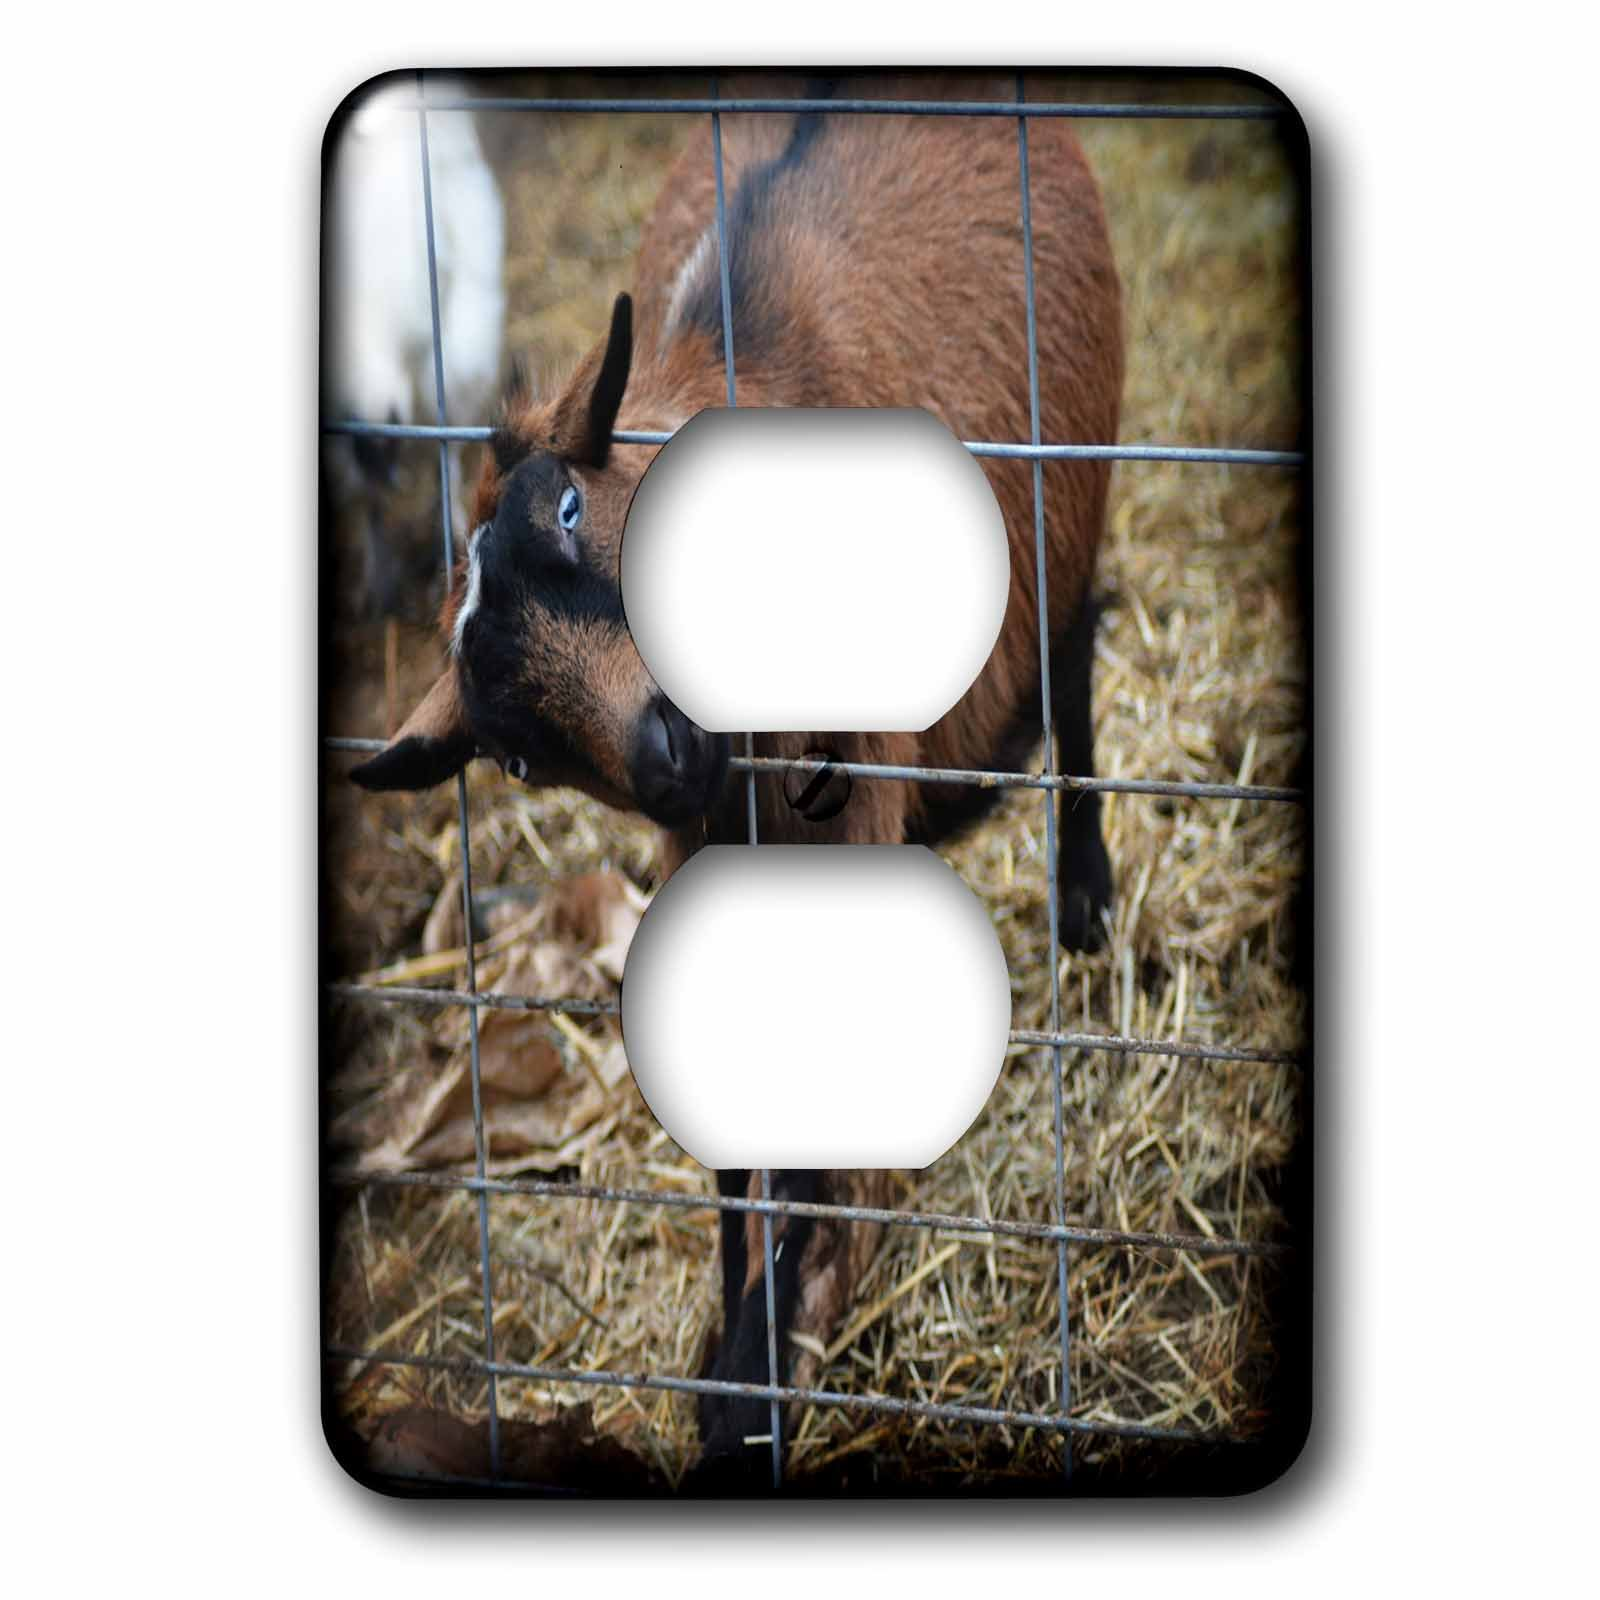 3dRose WhiteOaks Photography and Artwork - Goats - My Head is Stuck is a photo of a goat with its stuck sideways in fence - Light Switch Covers - 2 plug outlet cover (lsp_265338_6)